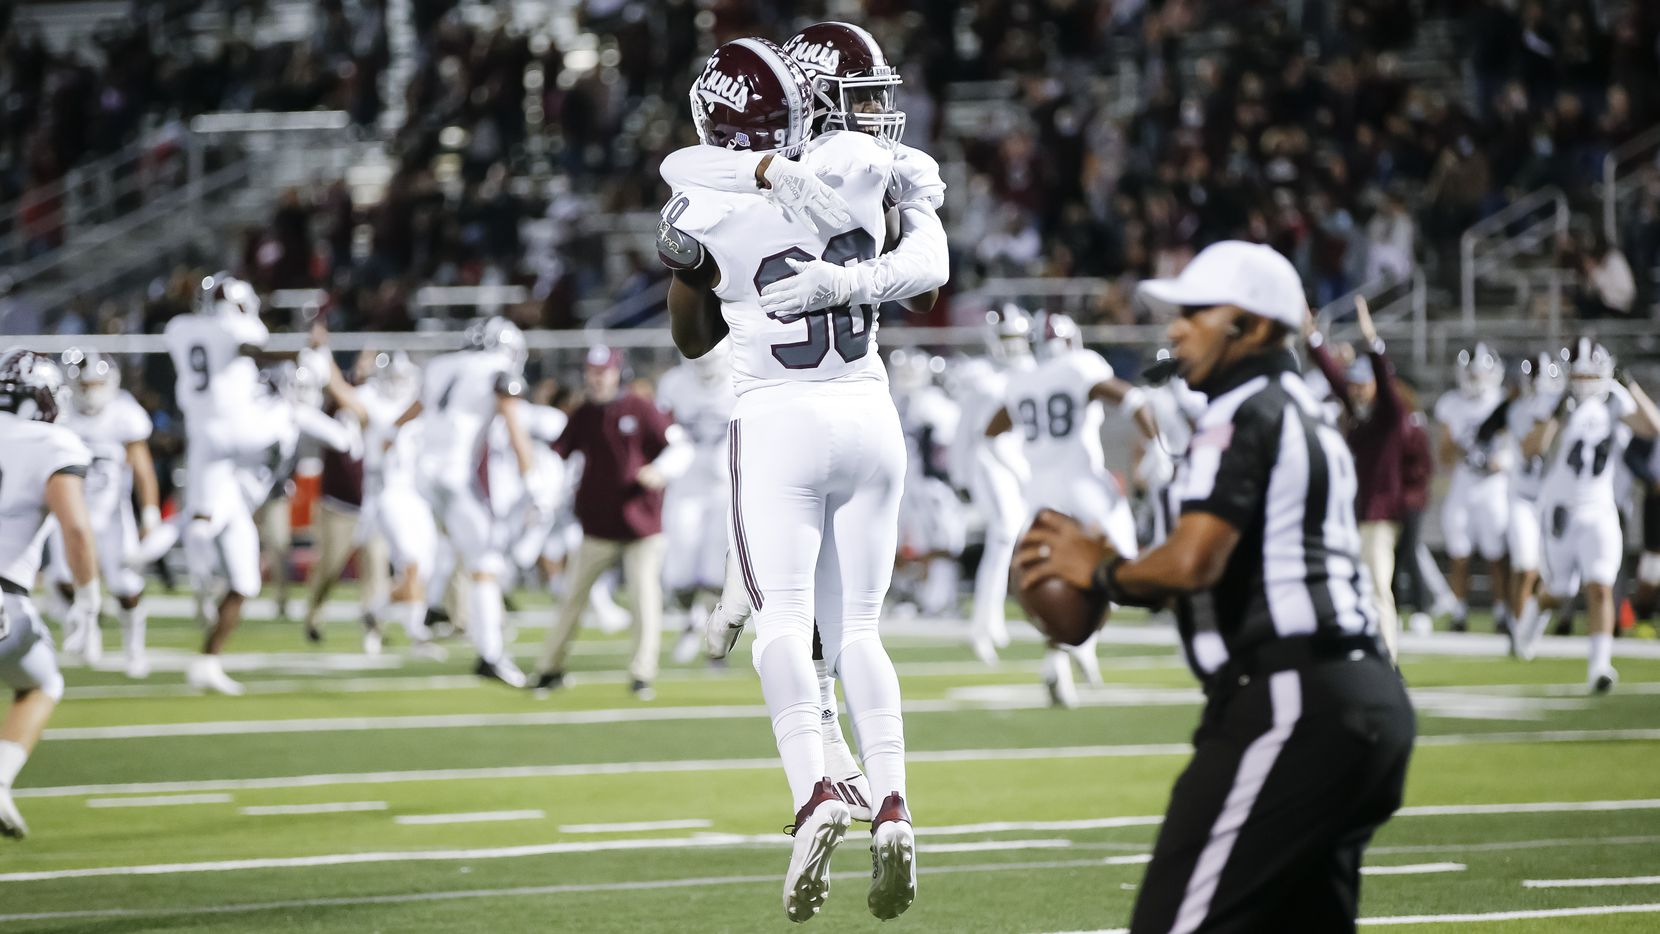 Ennis senior defensive lineman Jarveon Williams (90) is congratulated by senior defensive back Stephon Townsend after recovering a fumble by North Forney senior punter Collyn Shipley in the end zone for a touchdown during the first half of a high school playoff football game in Forney, Thursday, November 19, 2020. (Brandon Wade/Special Contributor)